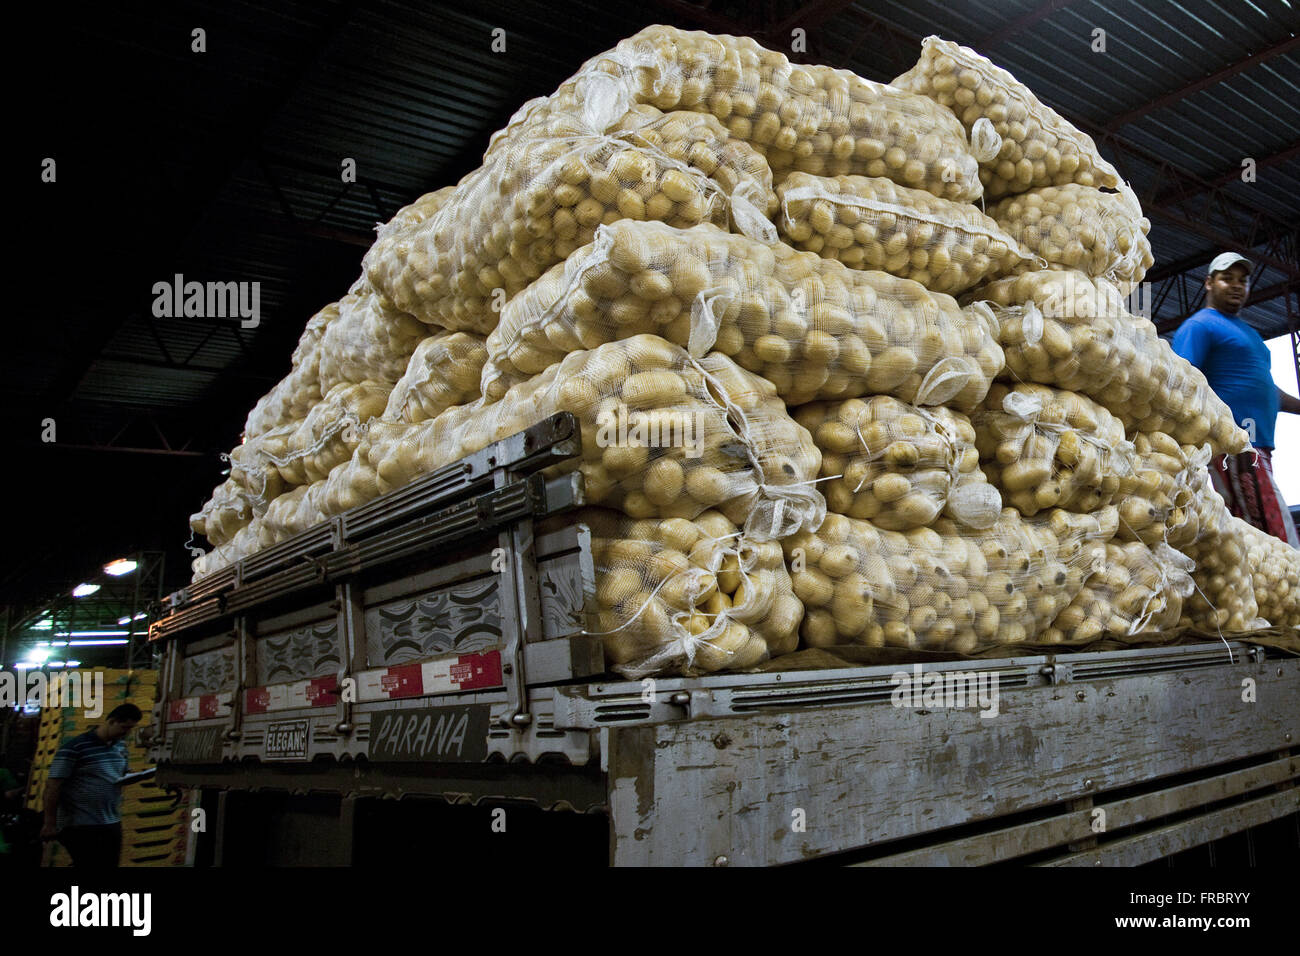 Body of truck loaded with sacks of potatoes in Ceasa overnight - Stock Image